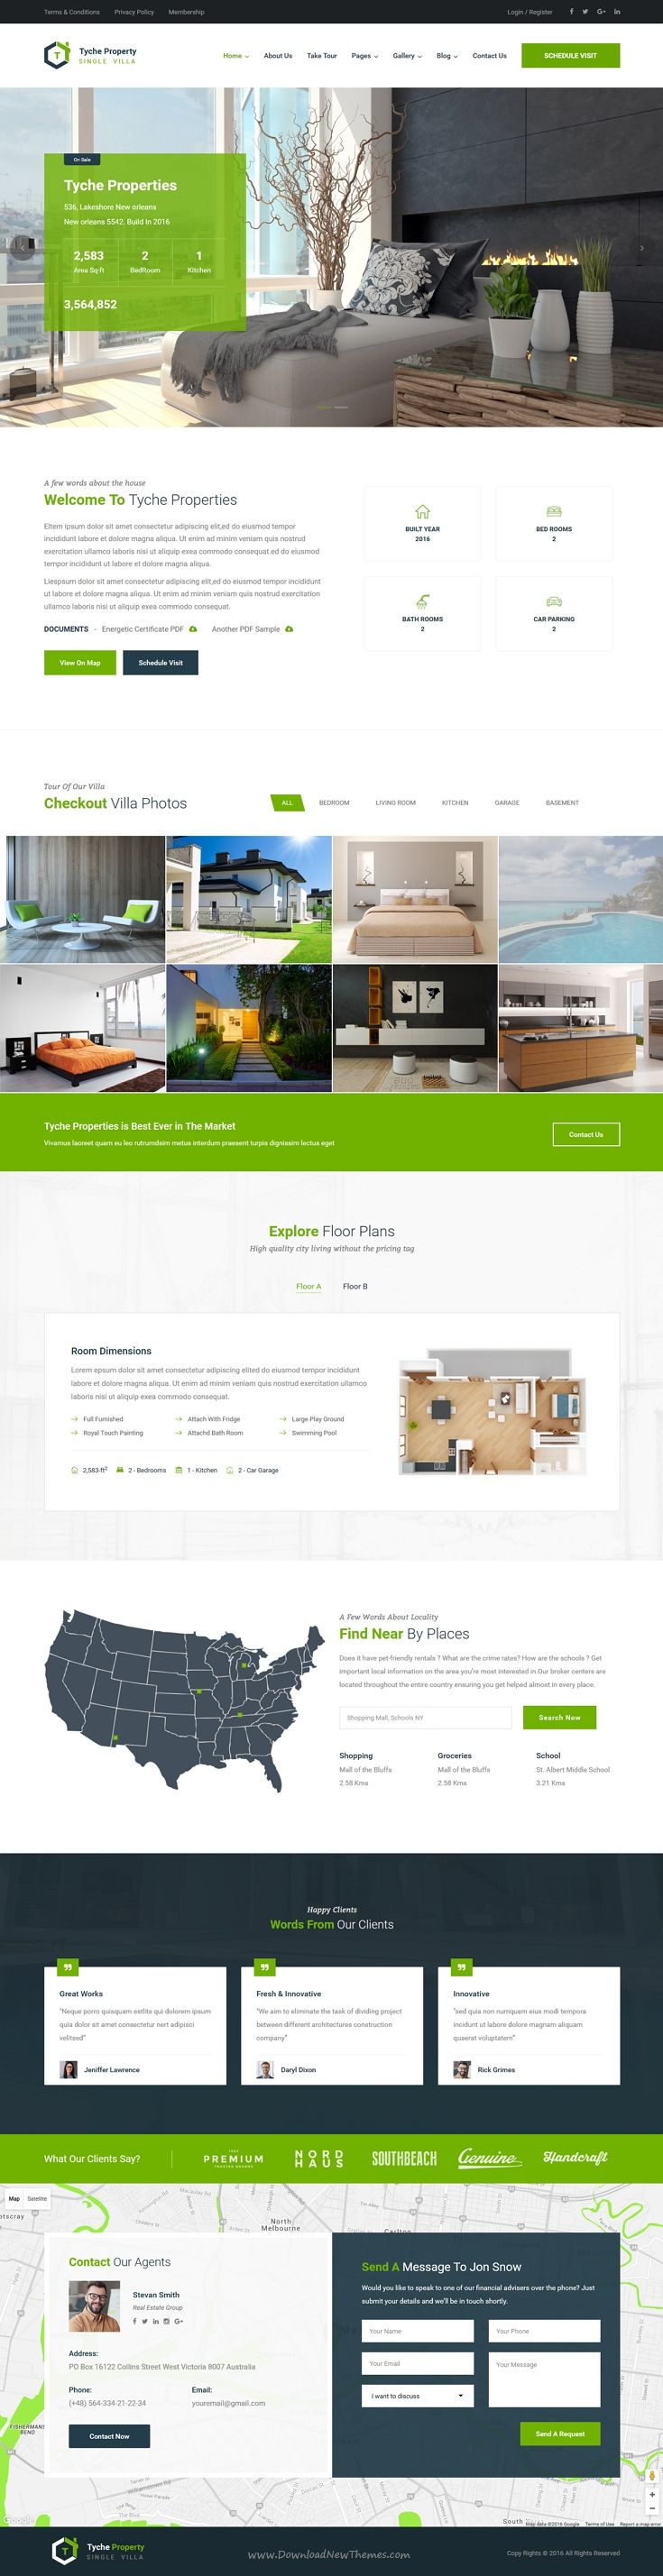 Tyche Properties - Single Property Real Estate HTML Template